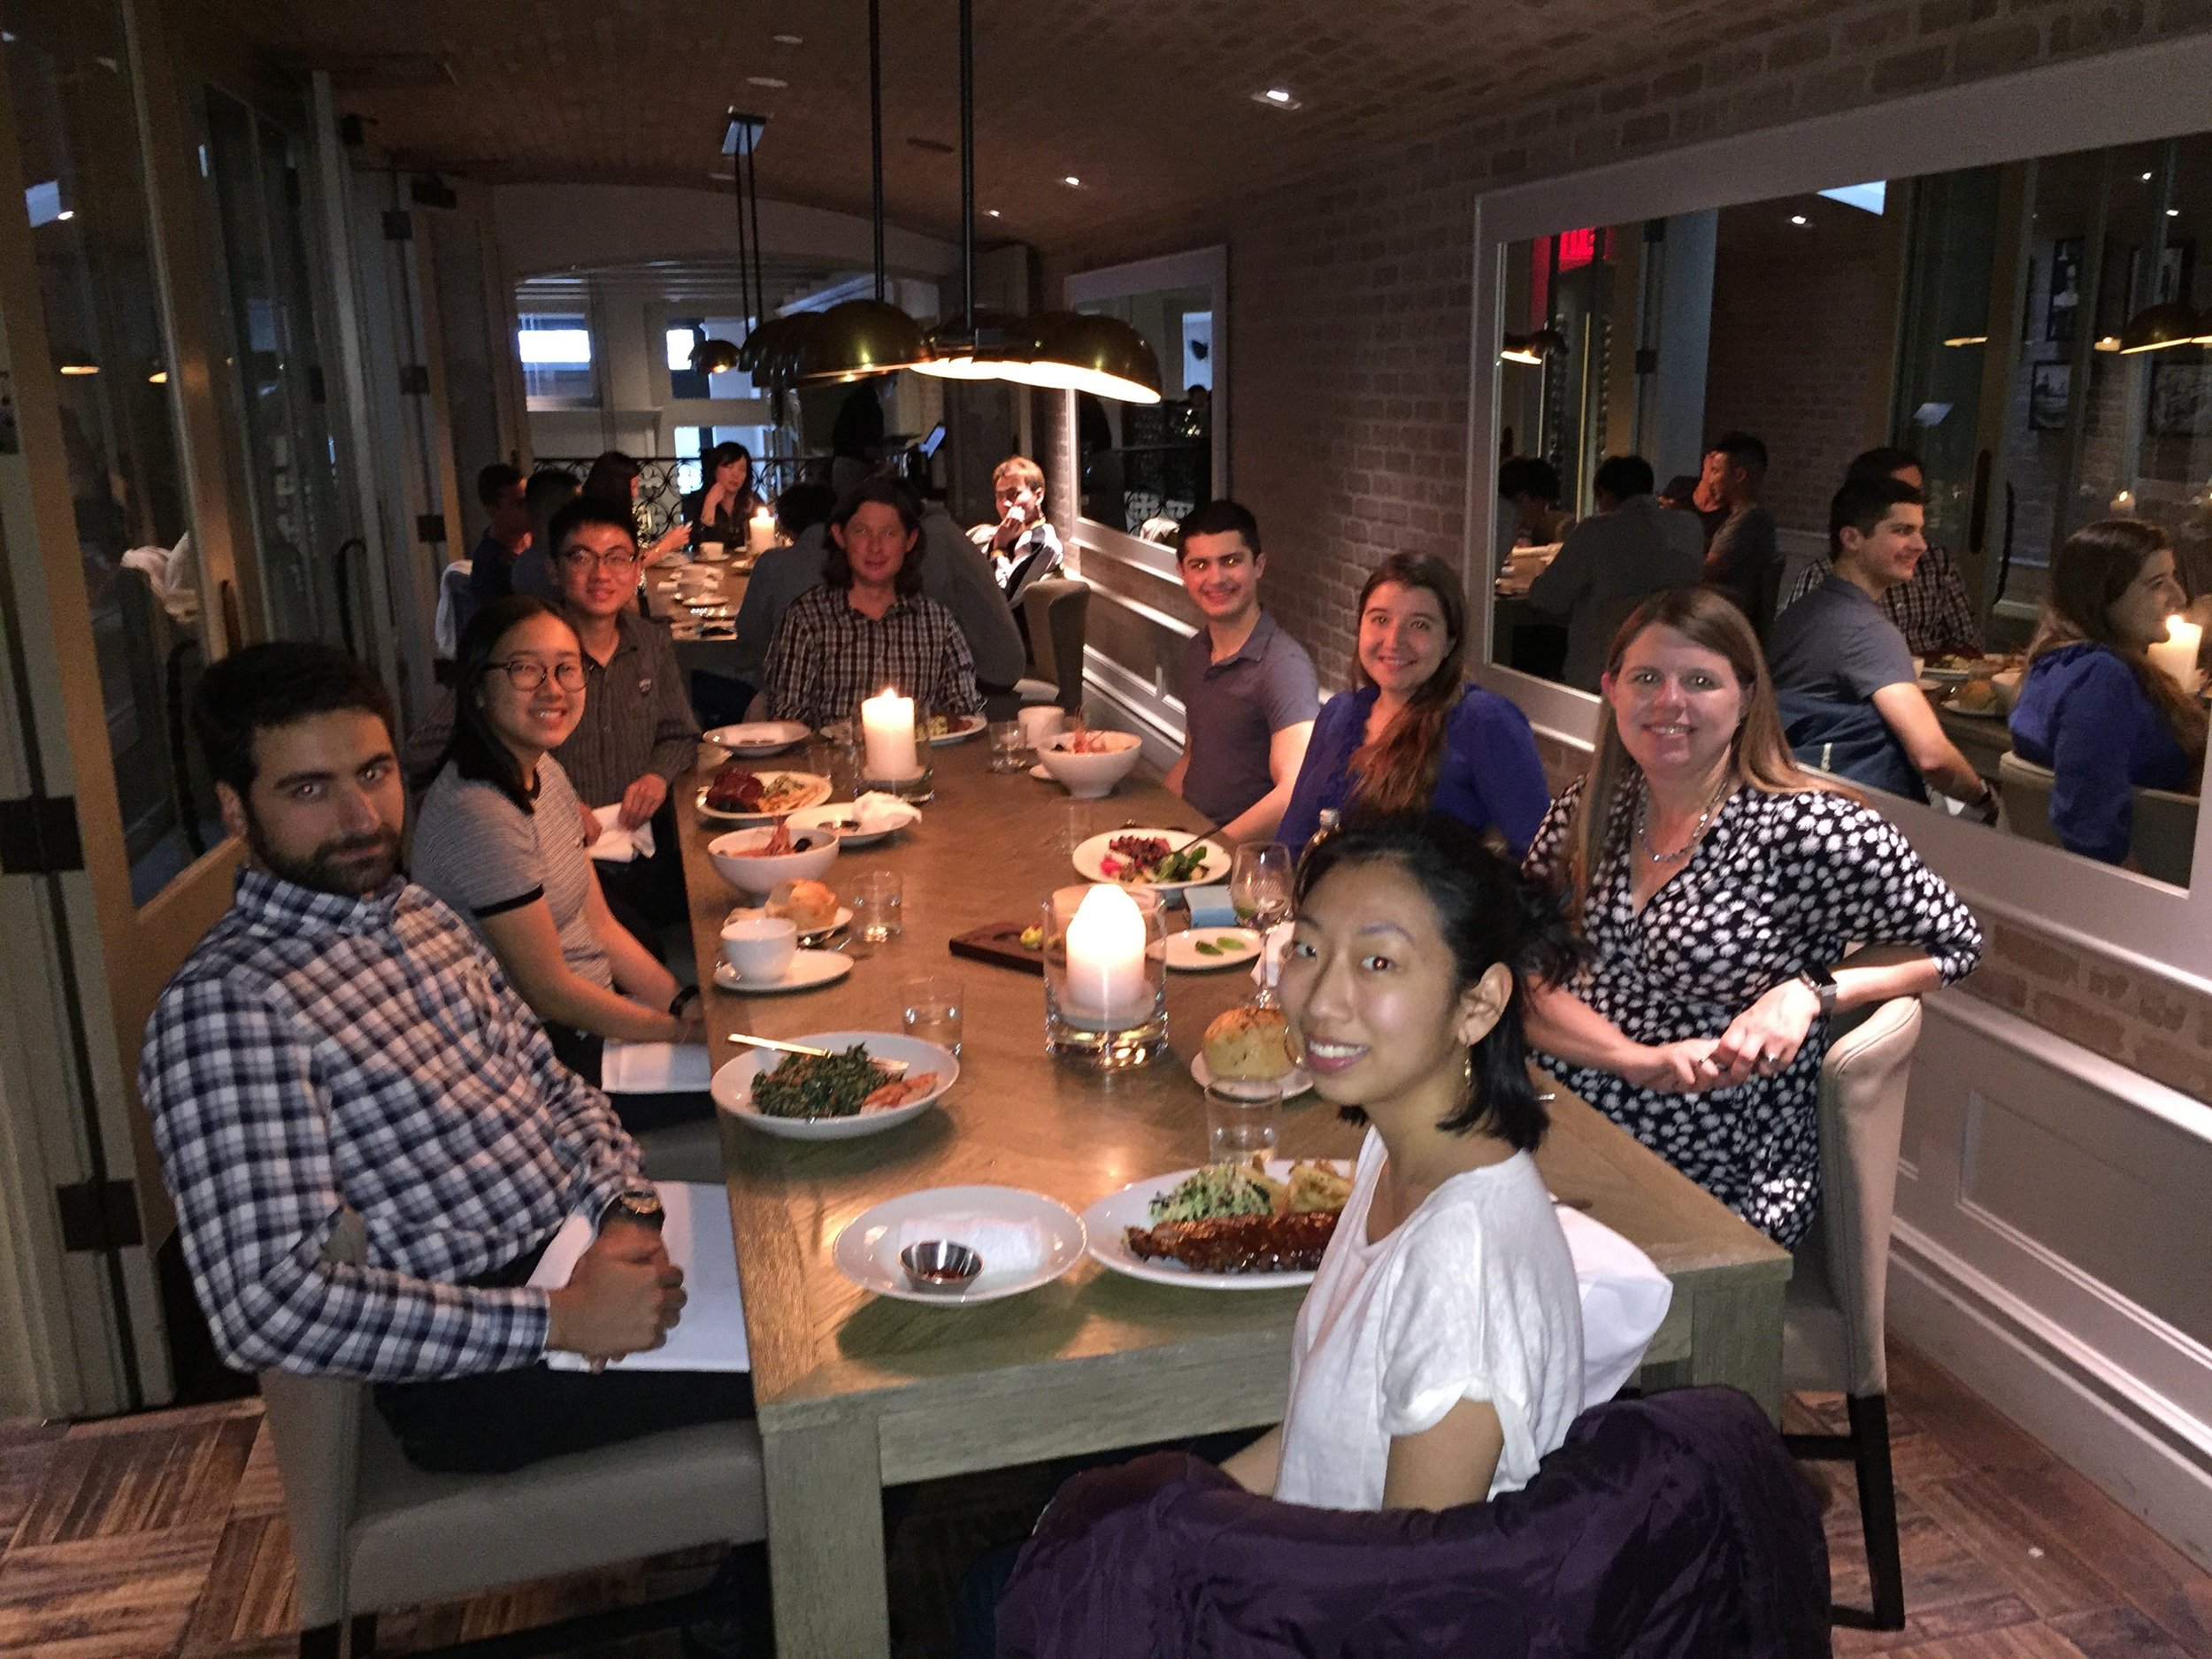 Sandy Ottensmann (BS '05) and Nick Van Buer (BS '05) hosted 6 undergraduate students for dinner at Nick's Restaurant in Pasadena on Friday, April 28, 2018.